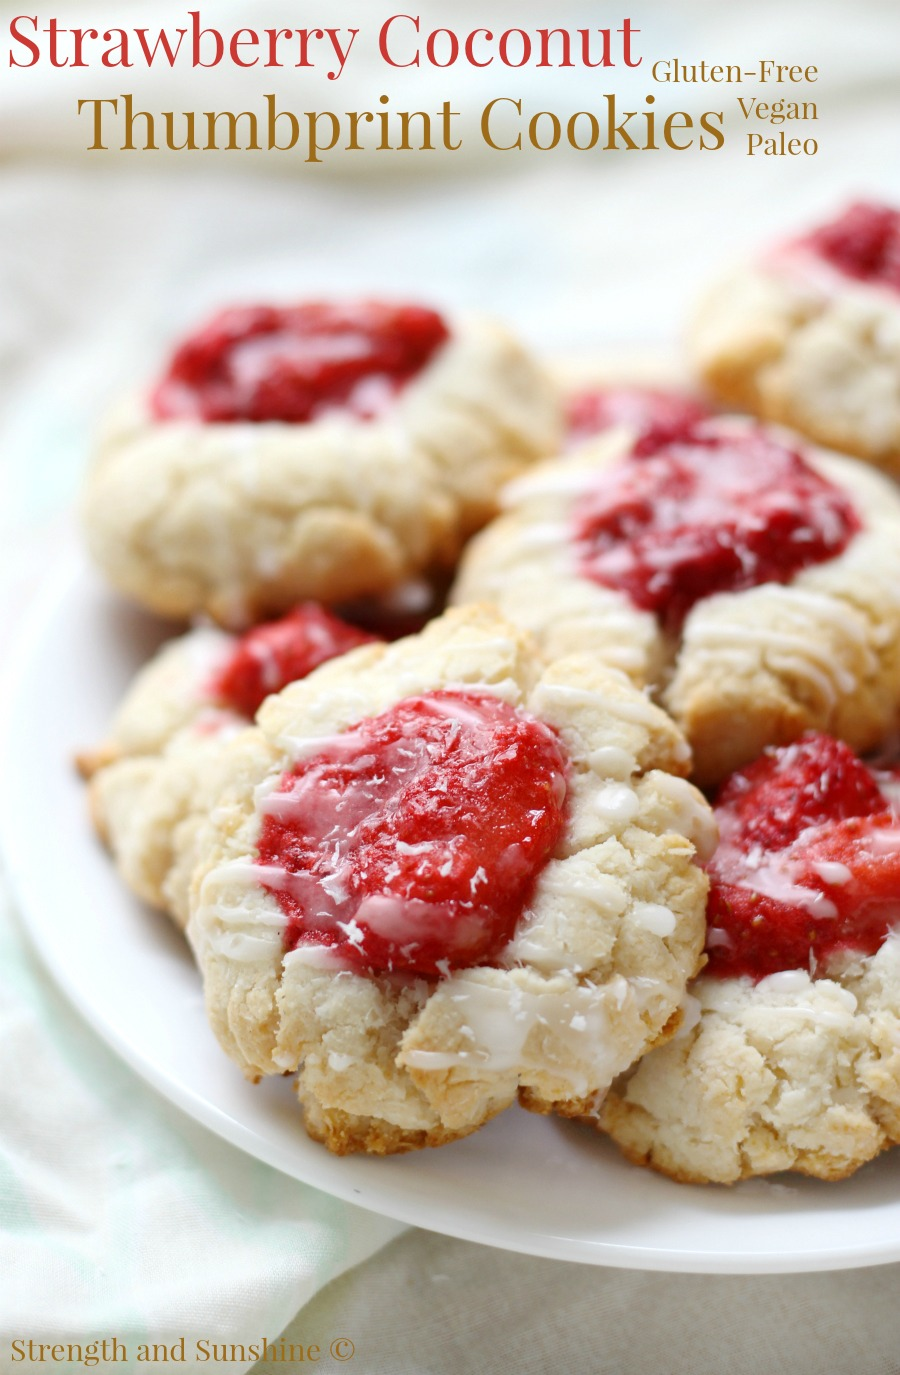 Gluten-free, Vegan, Strawberry Coconut Thumbprint Cookies, shared by Strength & Sunshine at The Chicken Chick's Clever Chicks Blog Hop